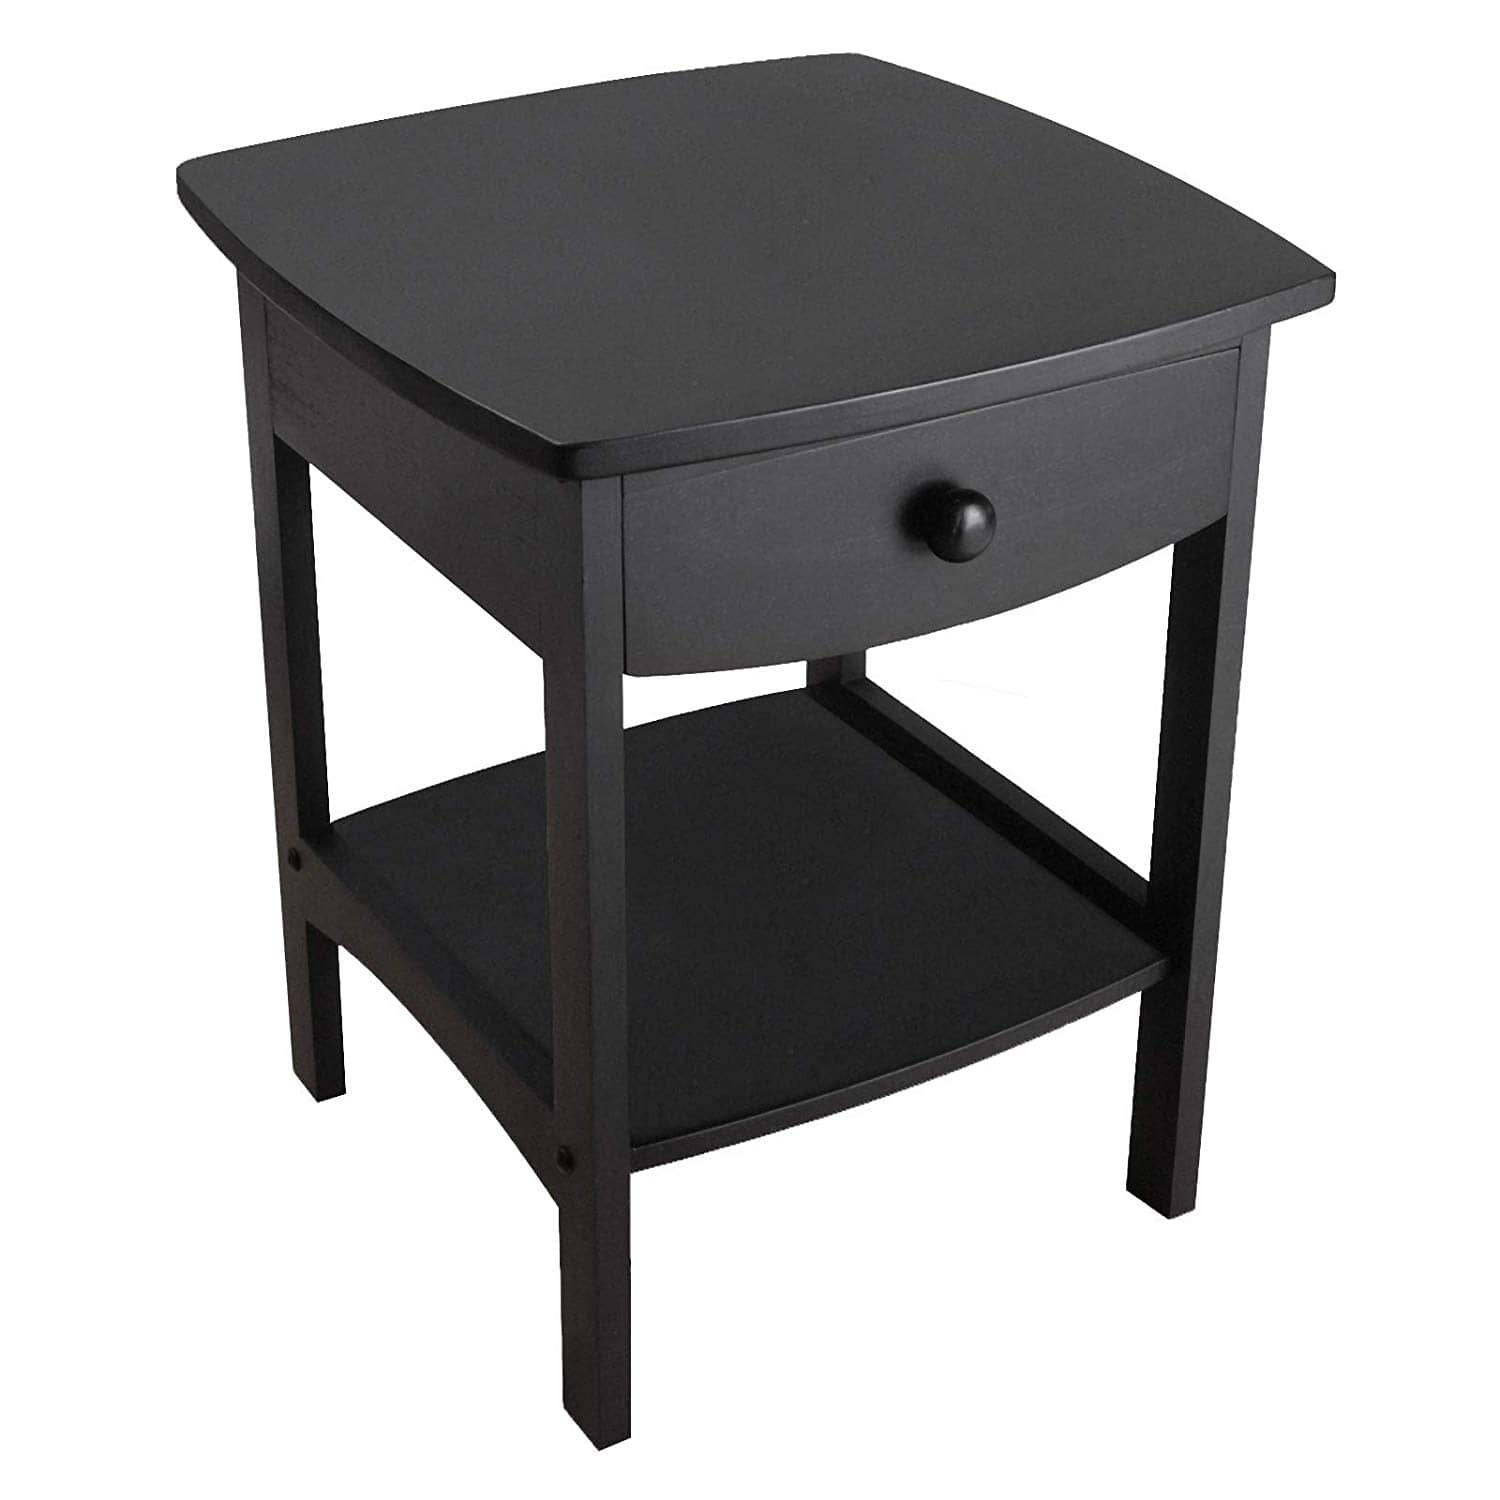 Winsome Wood Accent Table: Black $35.35 & More - Amazon